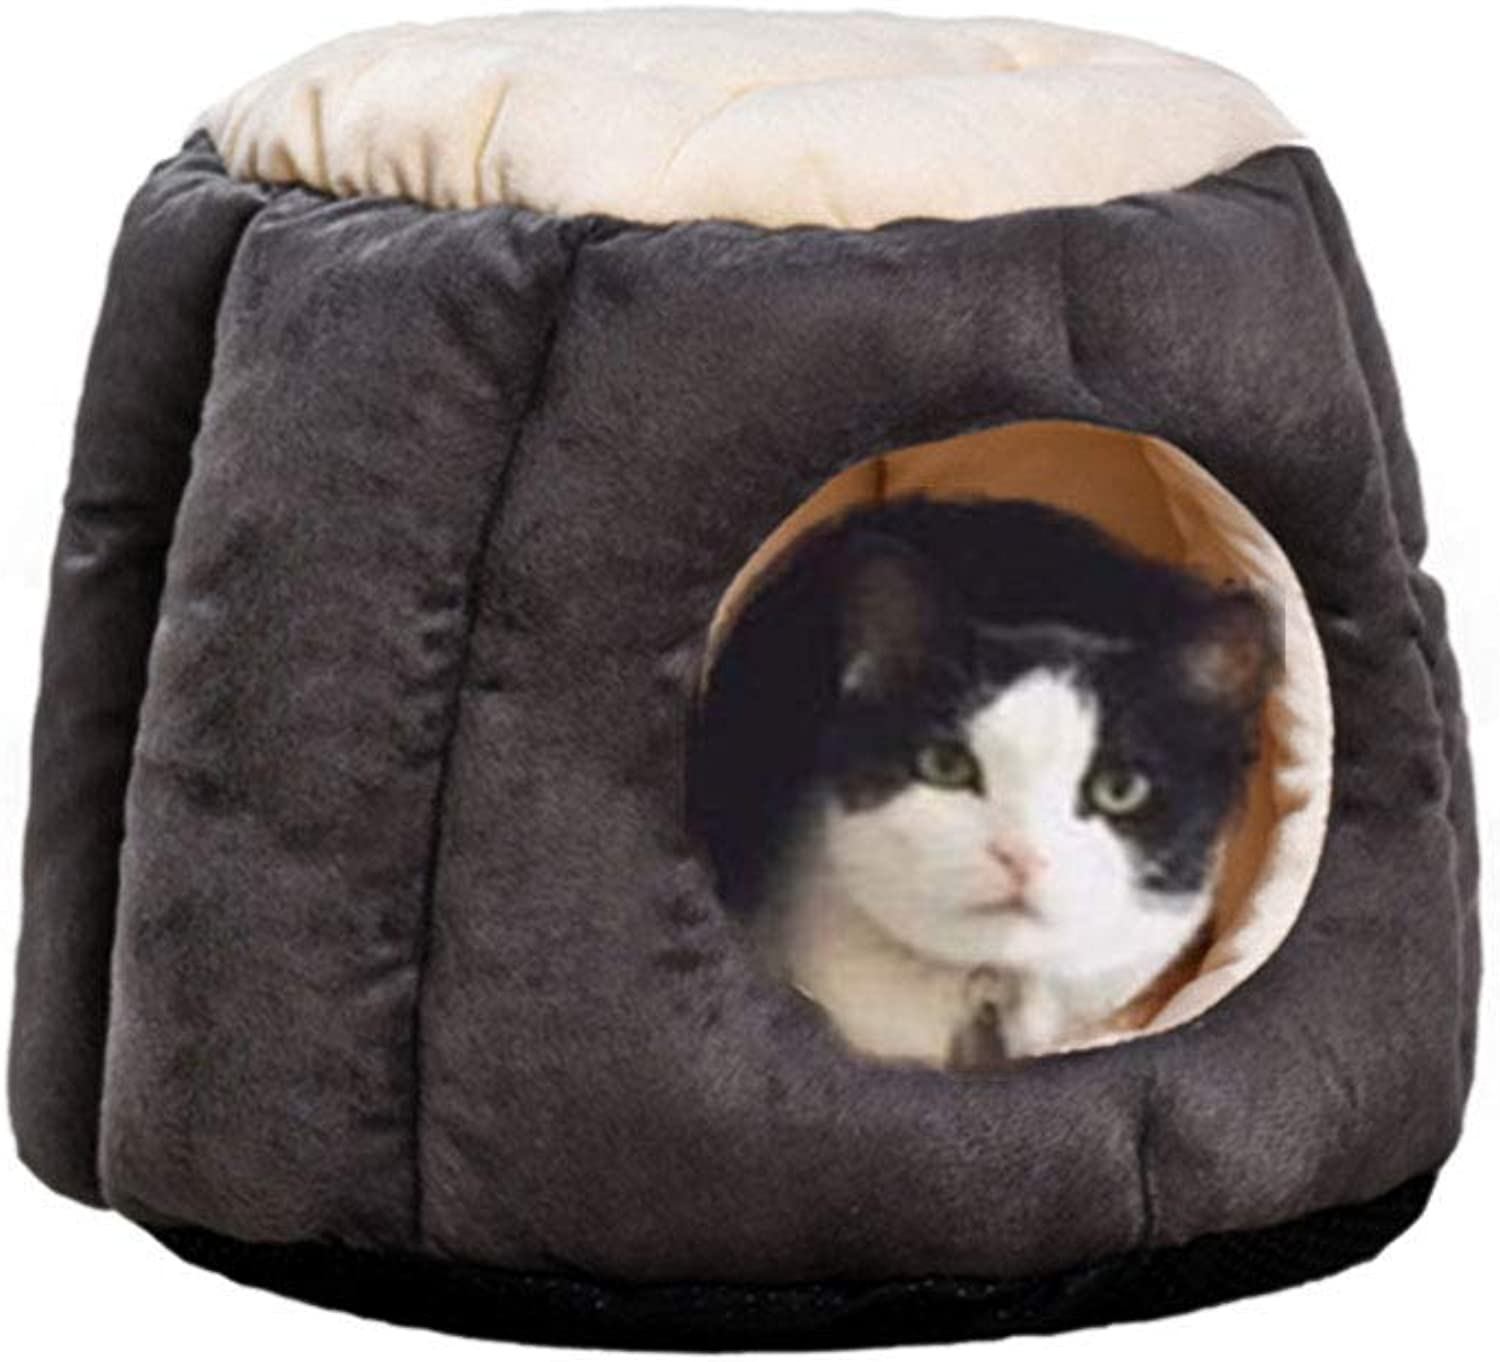 Cat House Soft Warm Cat Condo FrustumShape Puppy Dog Bed Cat Hideout Stylish Cat Bed Cat Hut Hideaway for Winter to Cat or Puppy